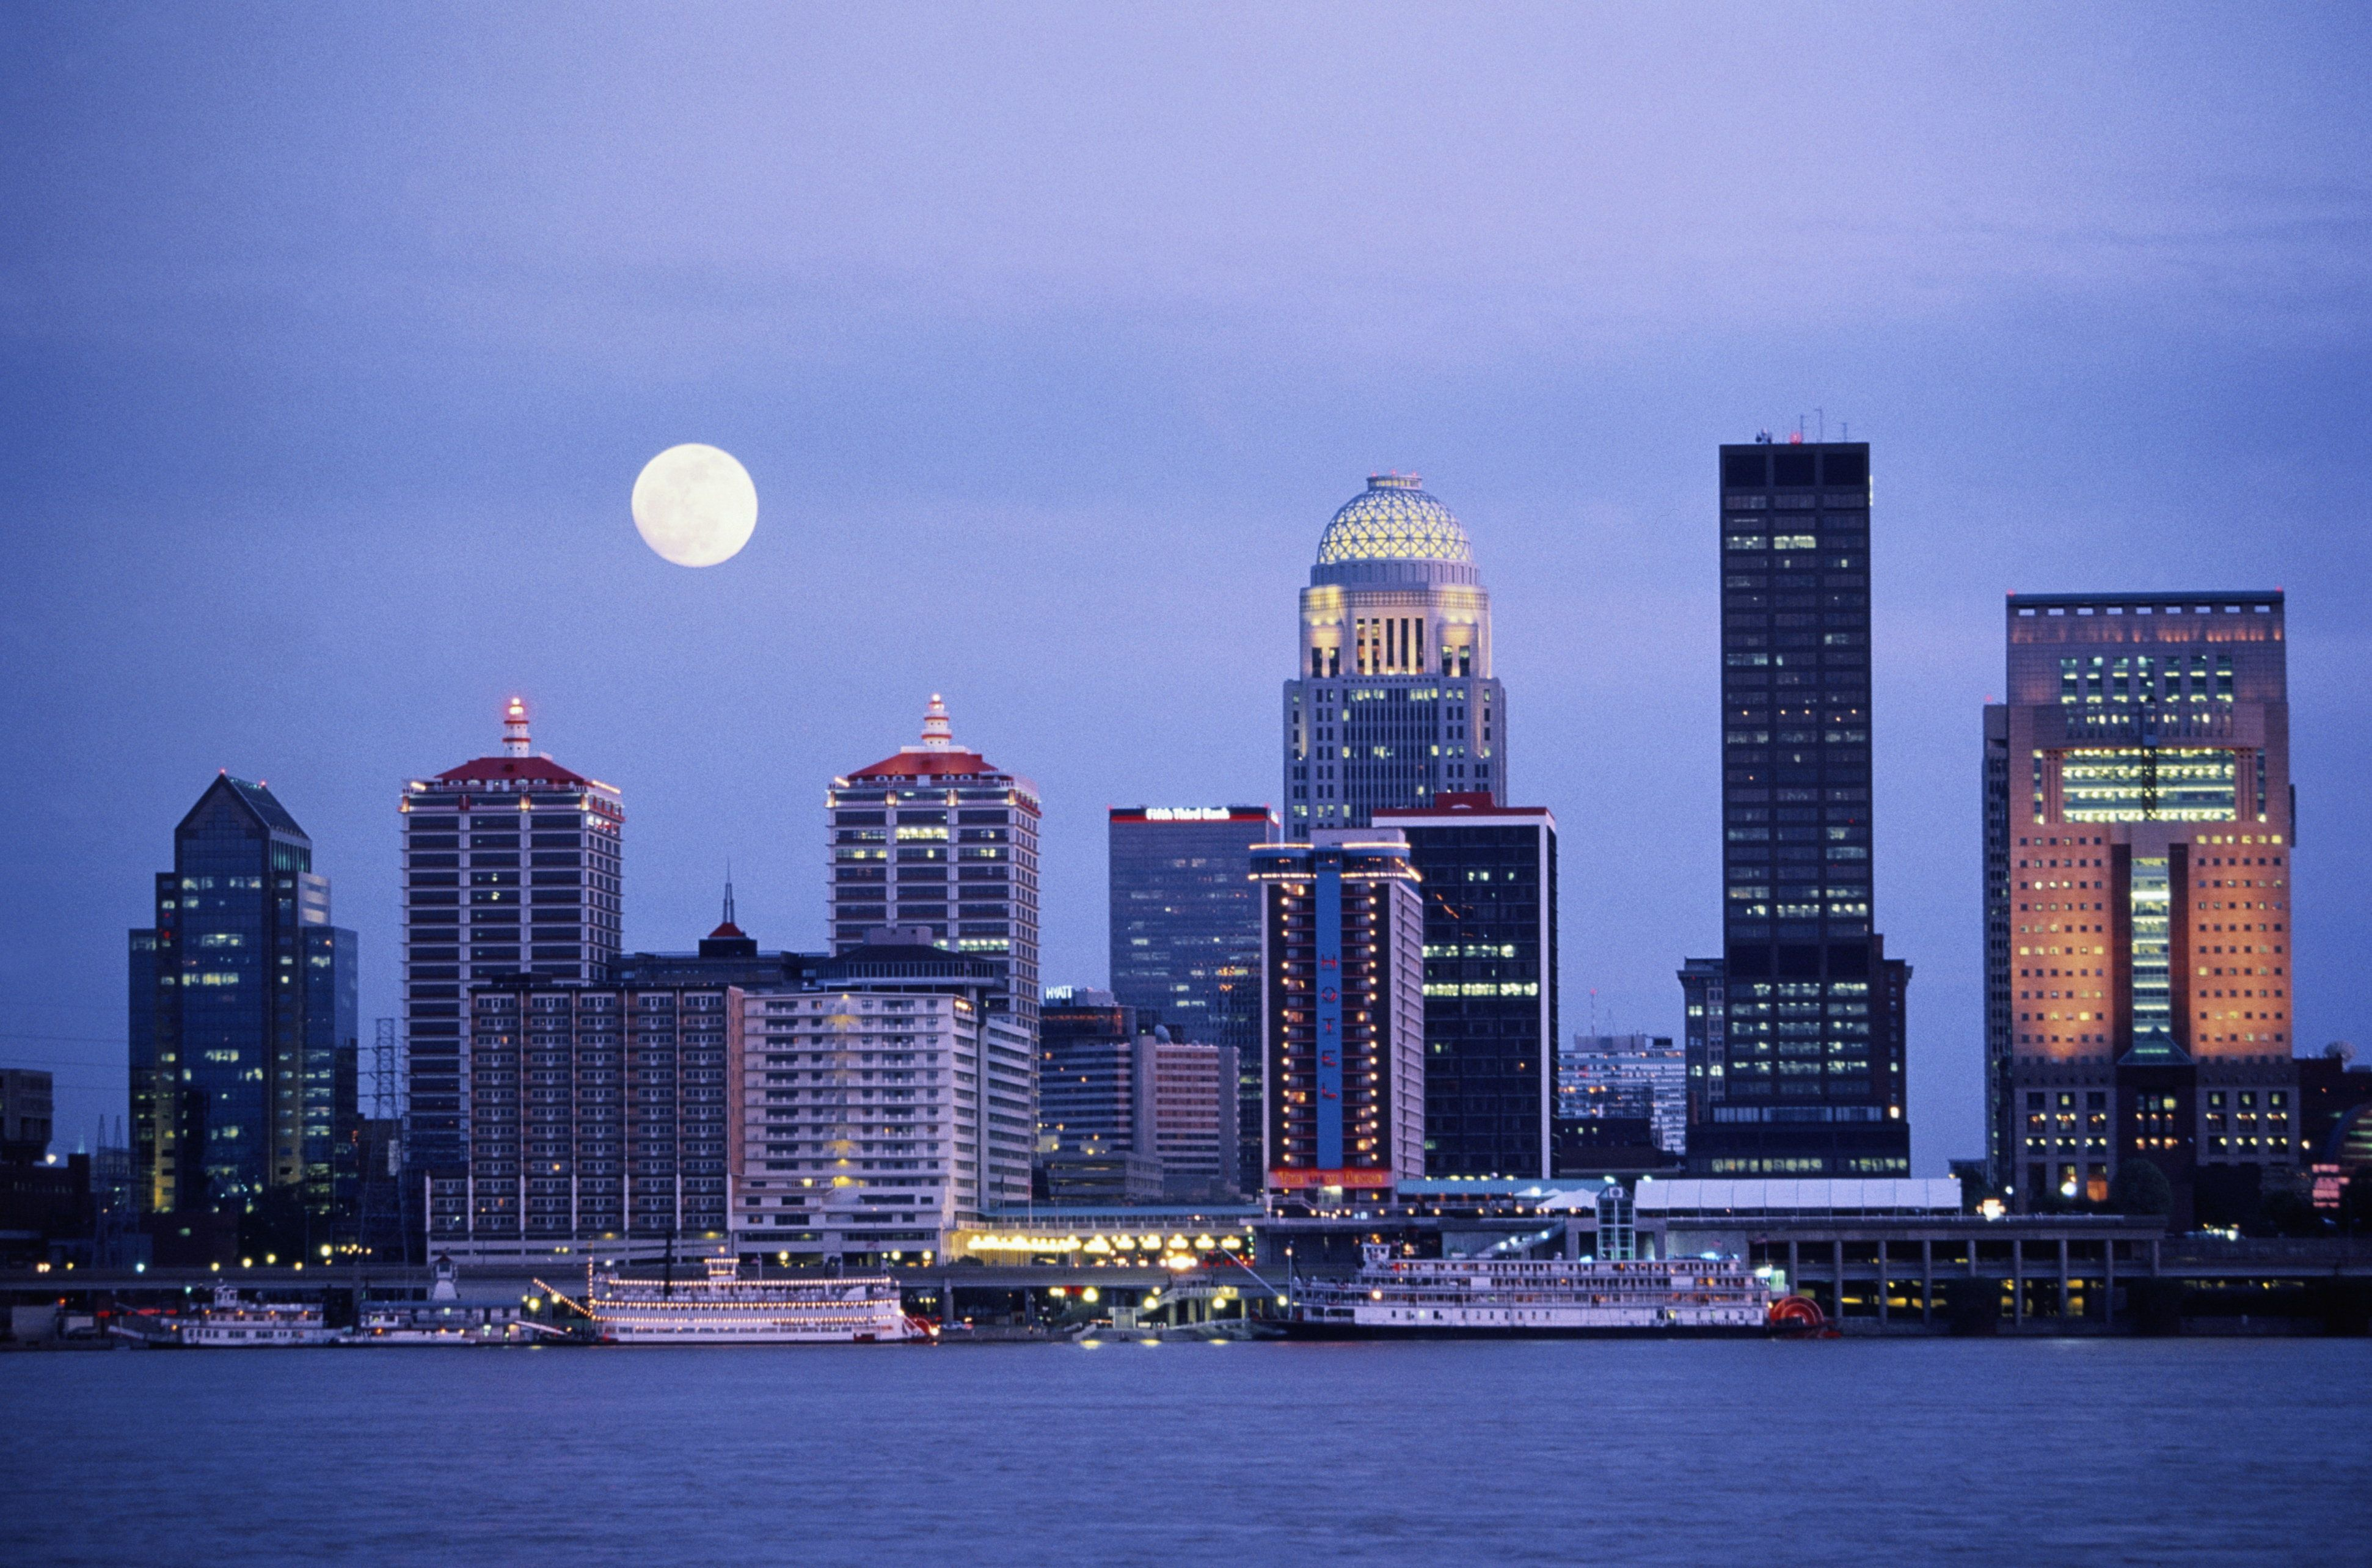 USA, Kentucky, Louisville, full moon over skyline at dusk